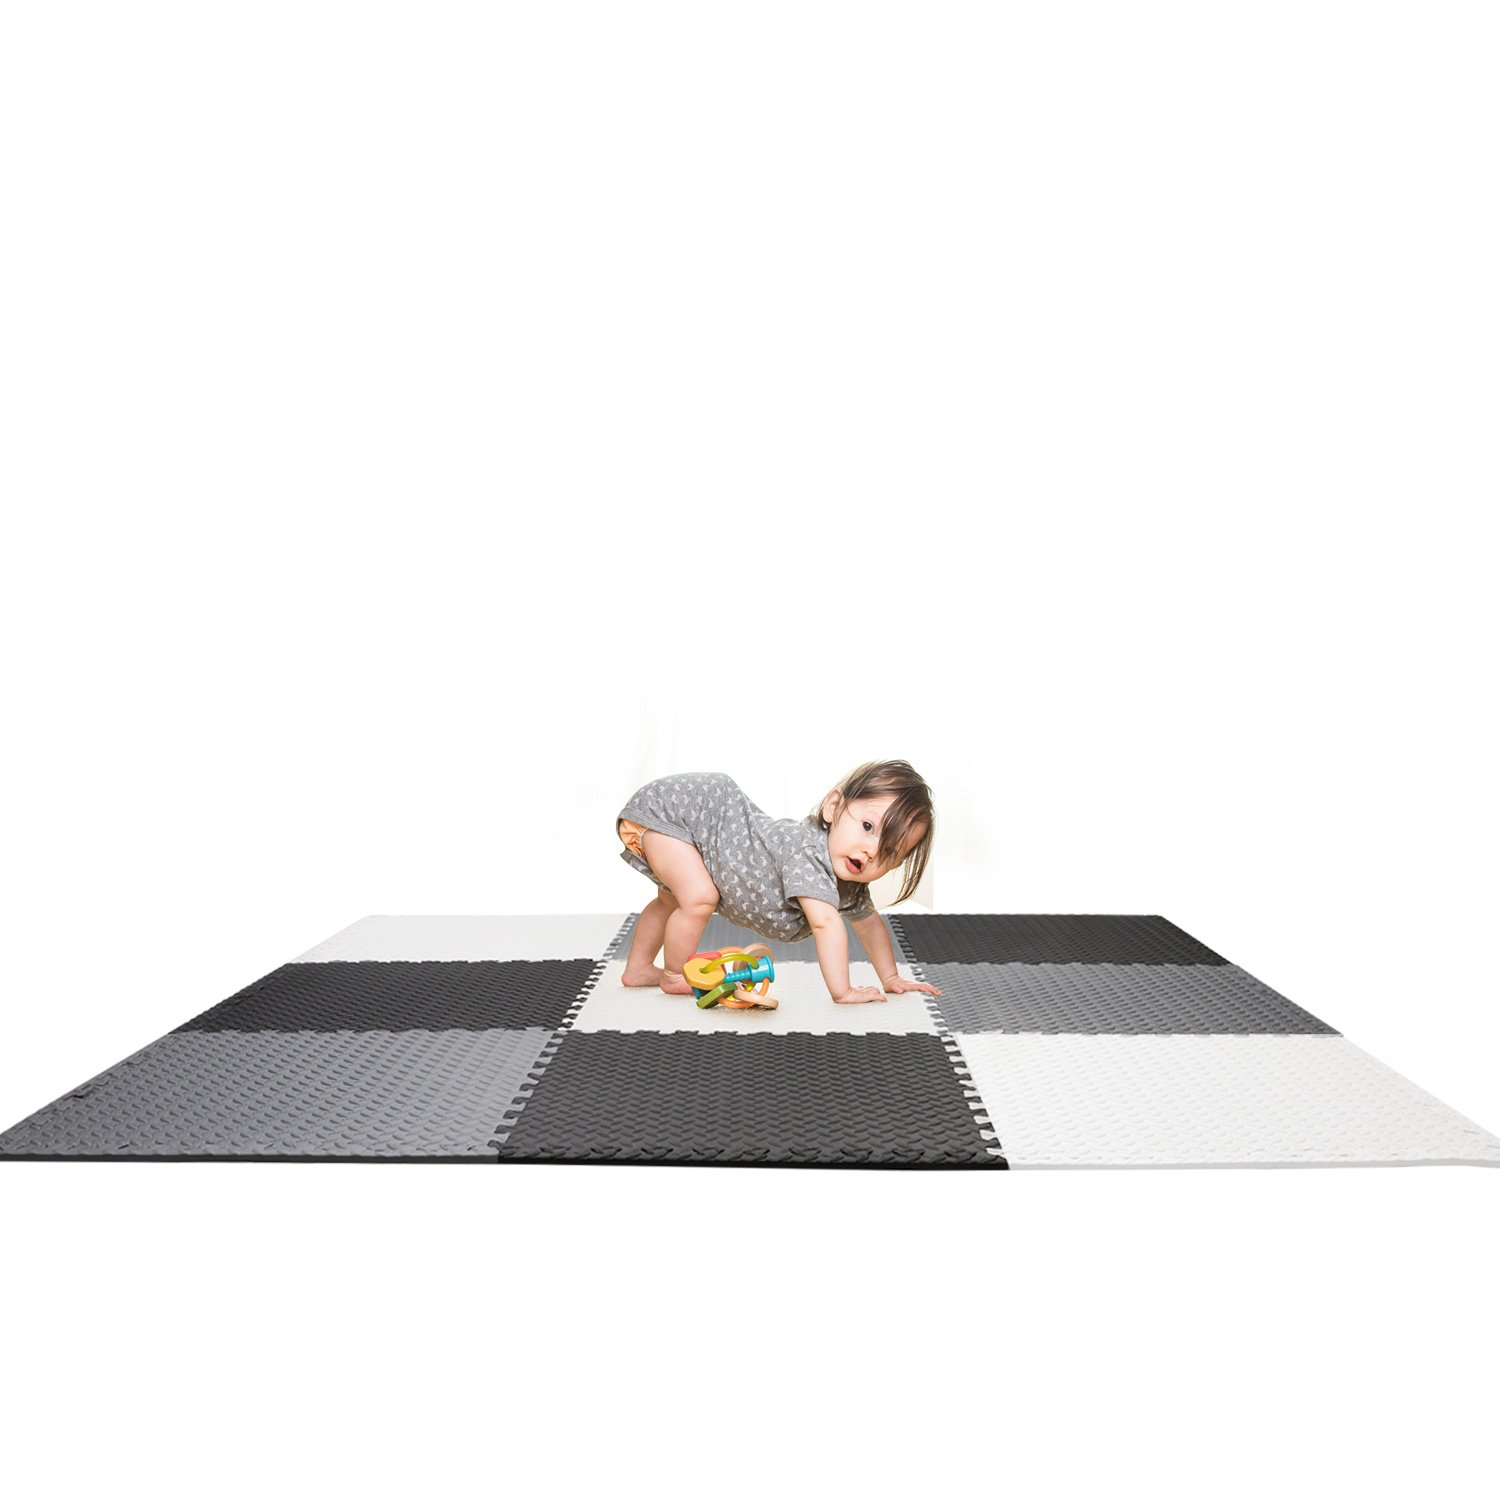 Kids Foam Play Mat Large Interlocking Tiles 36 square feet (6' x 6 ' area) Black, Gray, White